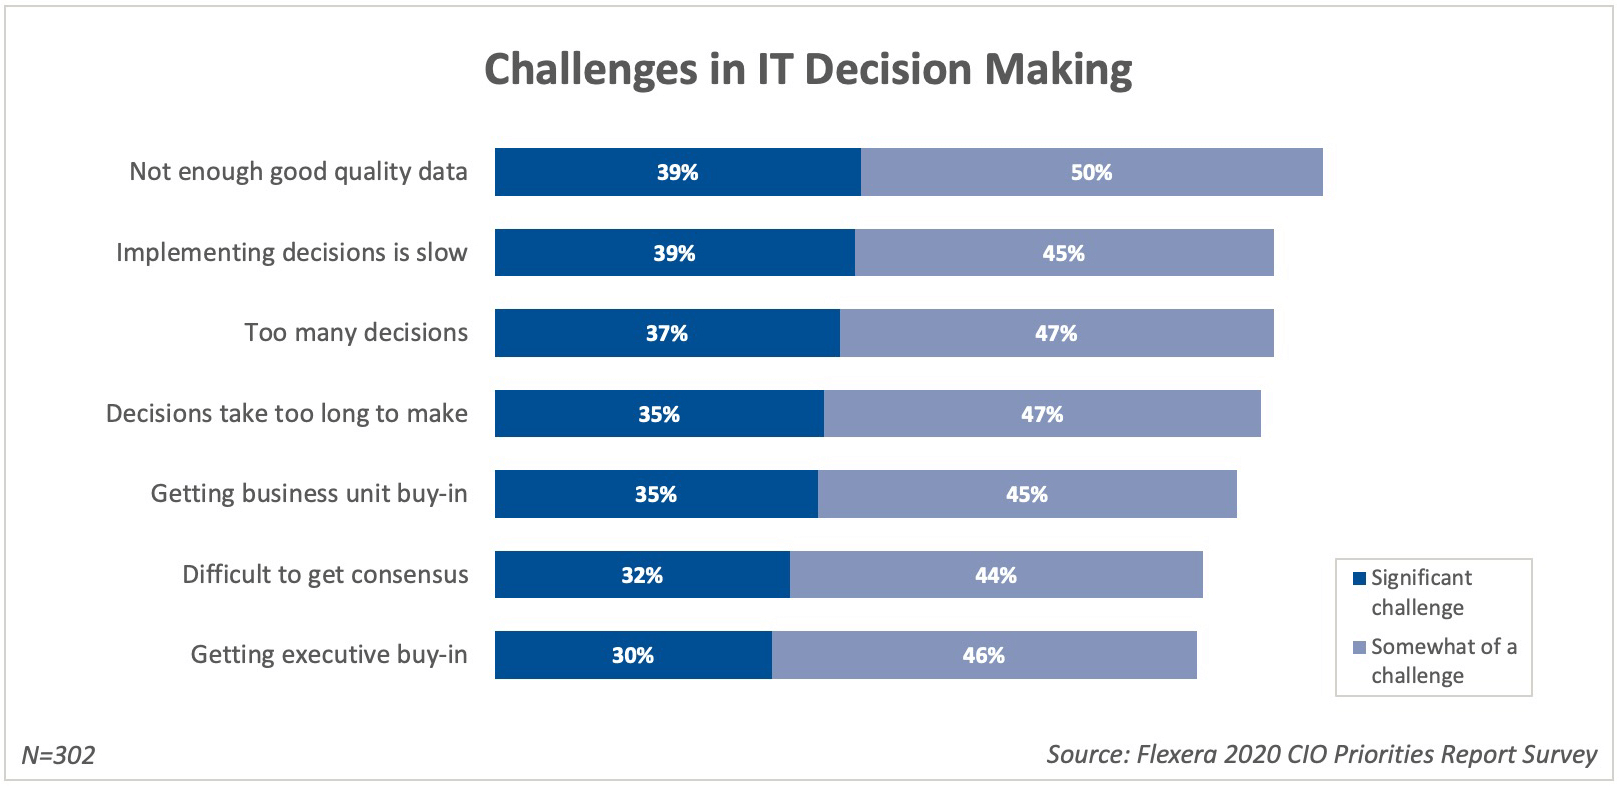 Challenges in IT Decision Making